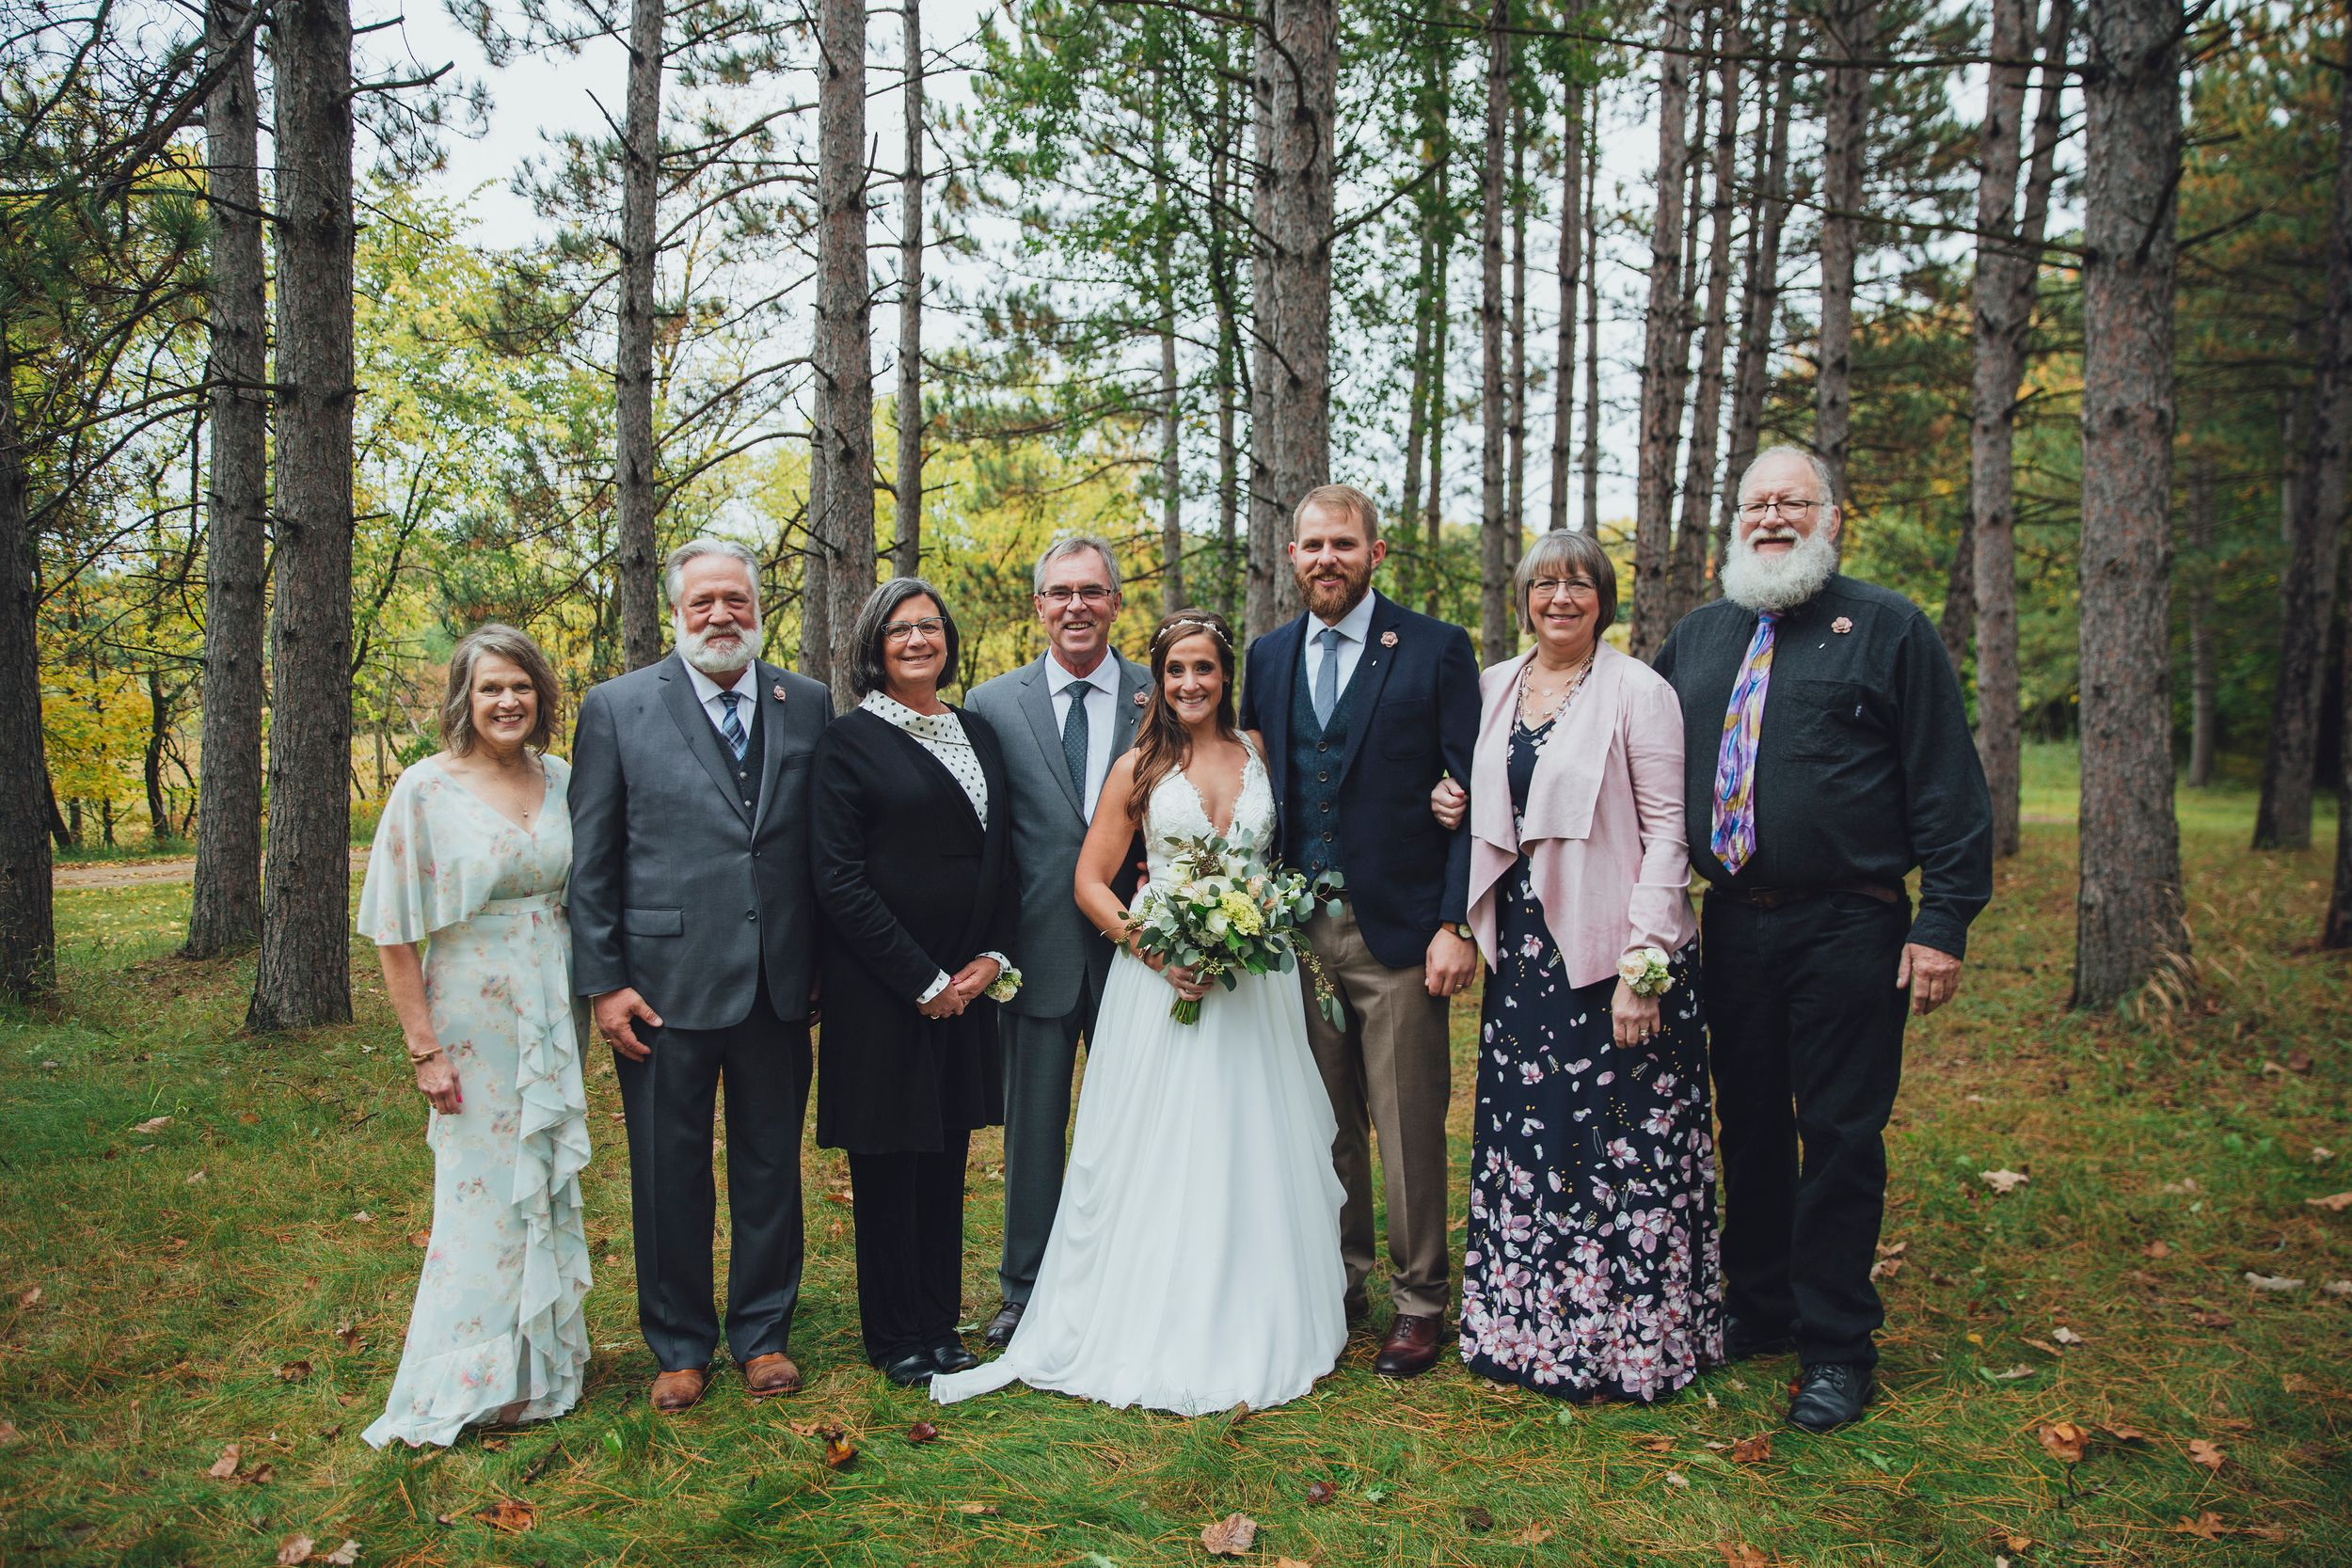 photos, family pictures, wedding, wedding day formal pictures, jennifer christi photo & video, MN ND photographers